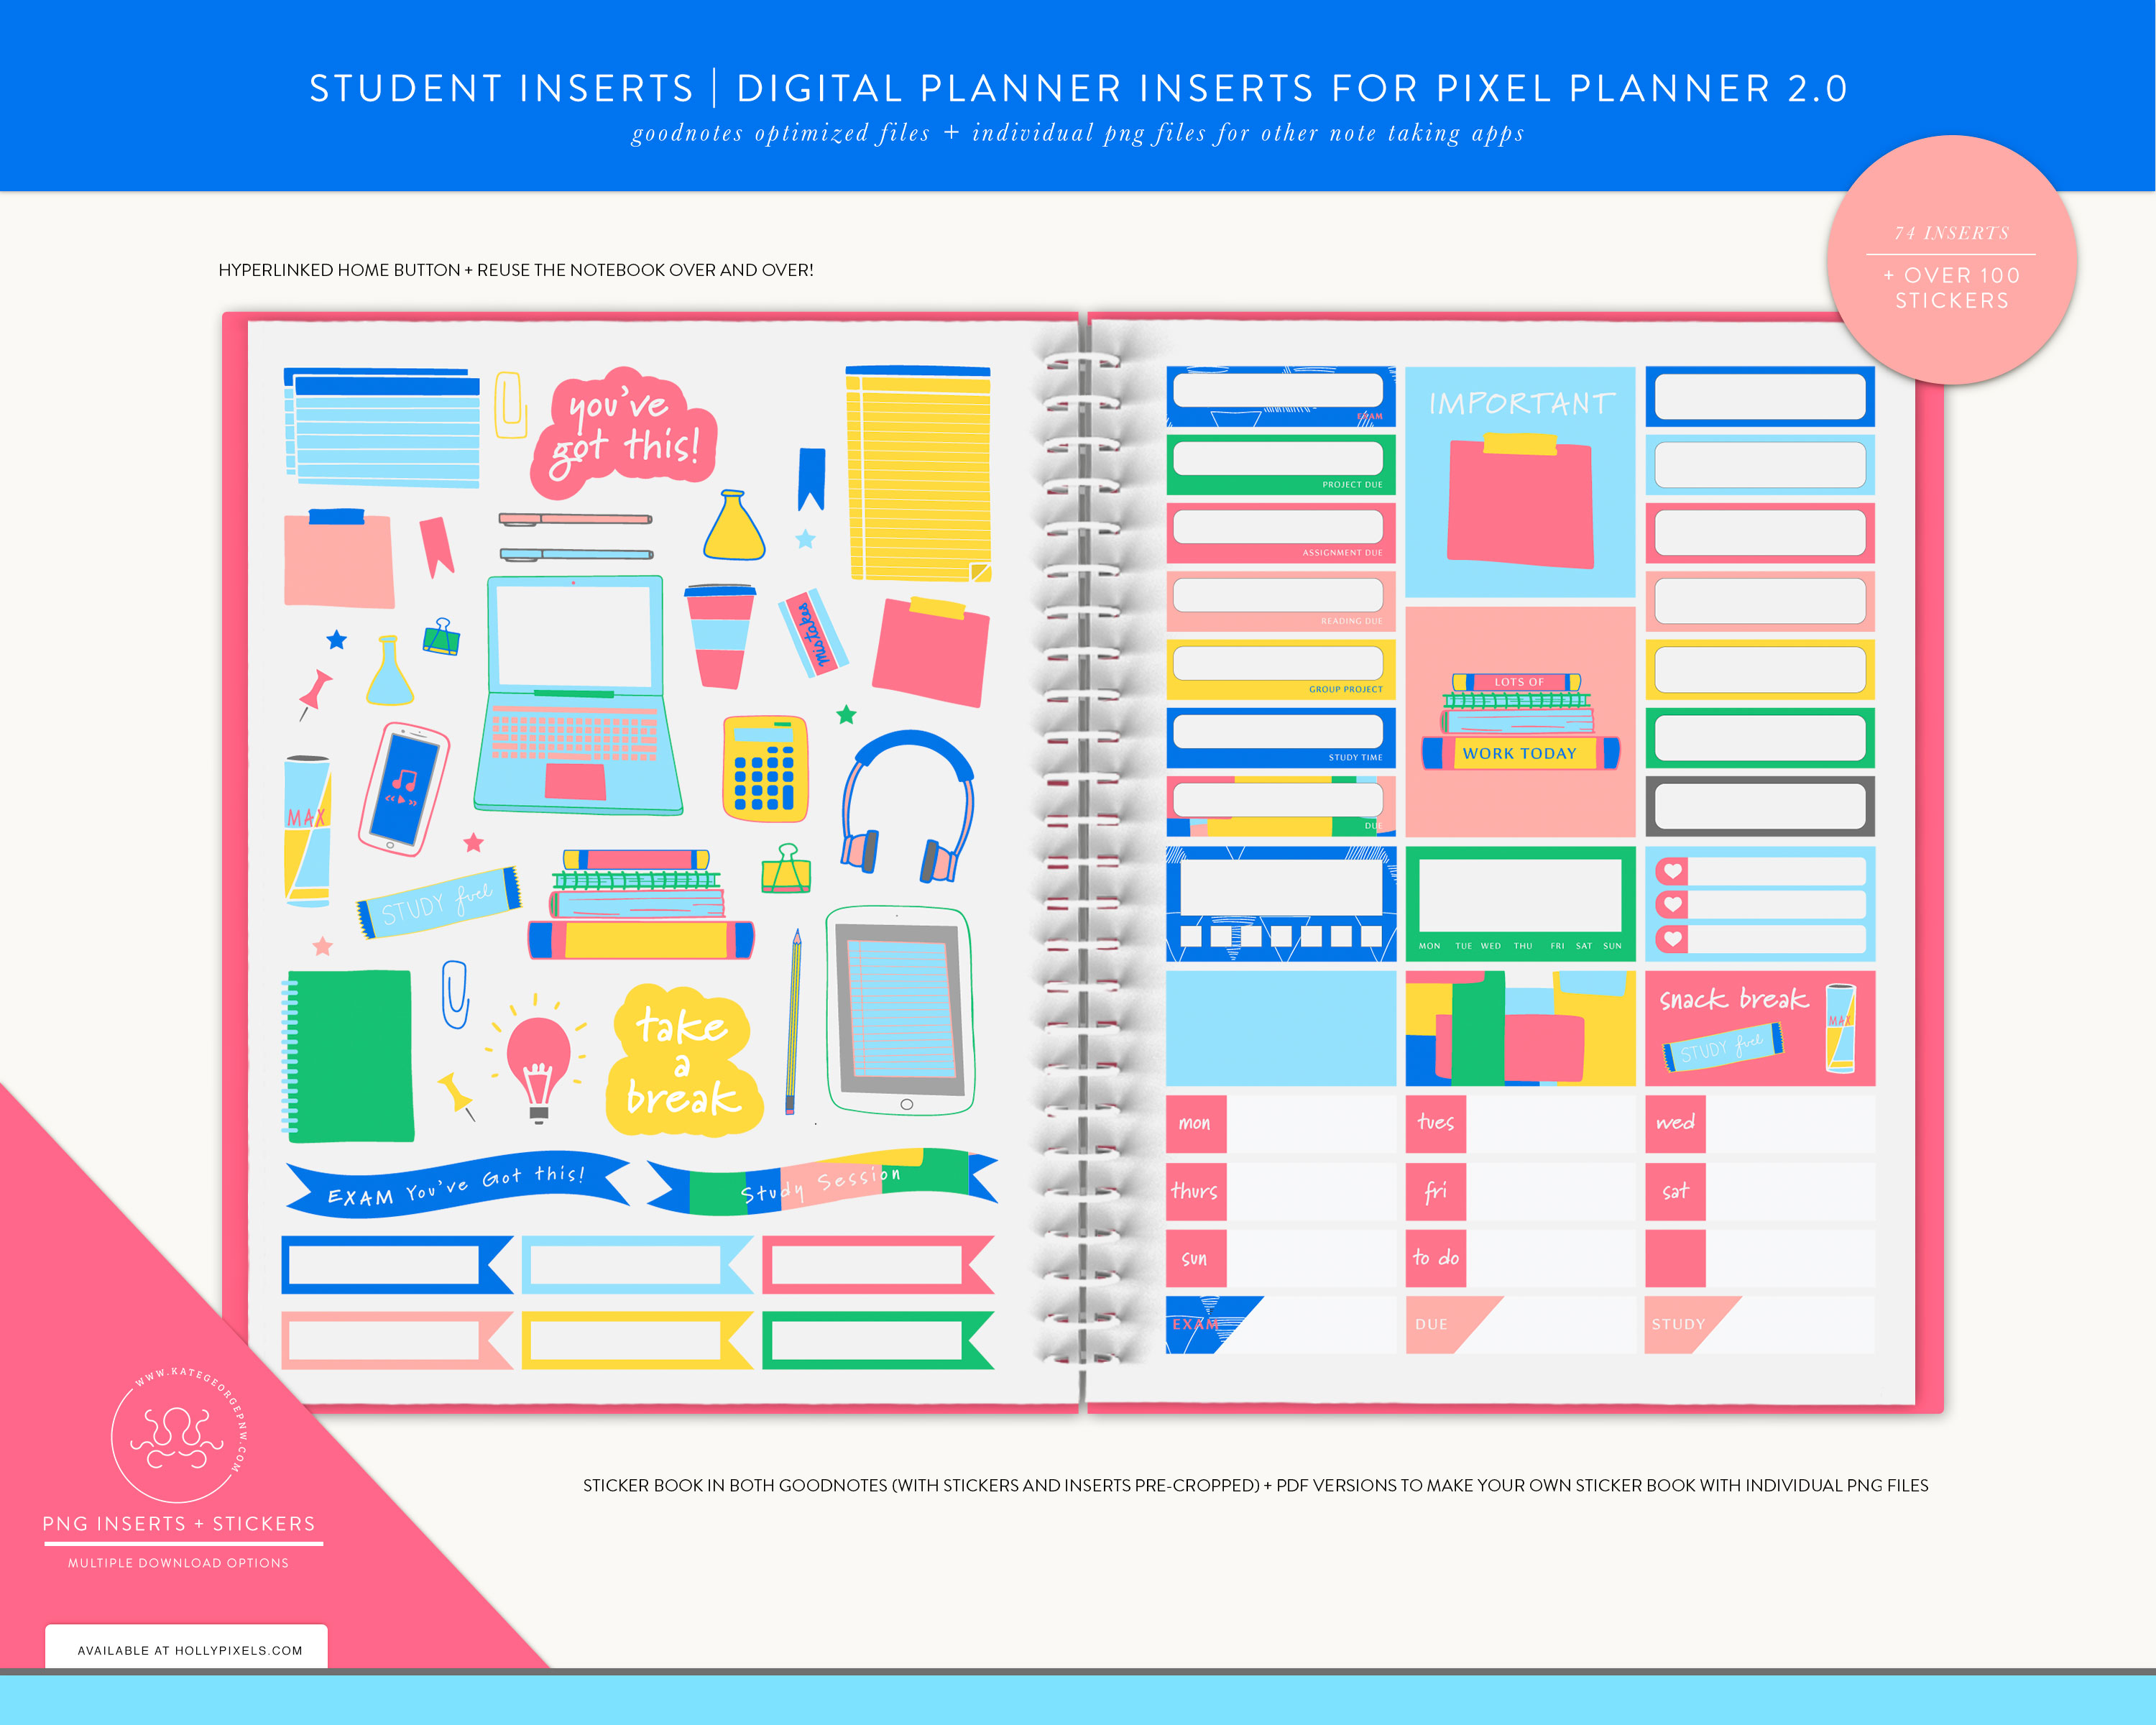 New Student Digital Planner Inserts and Stickers for GoodNotes 4